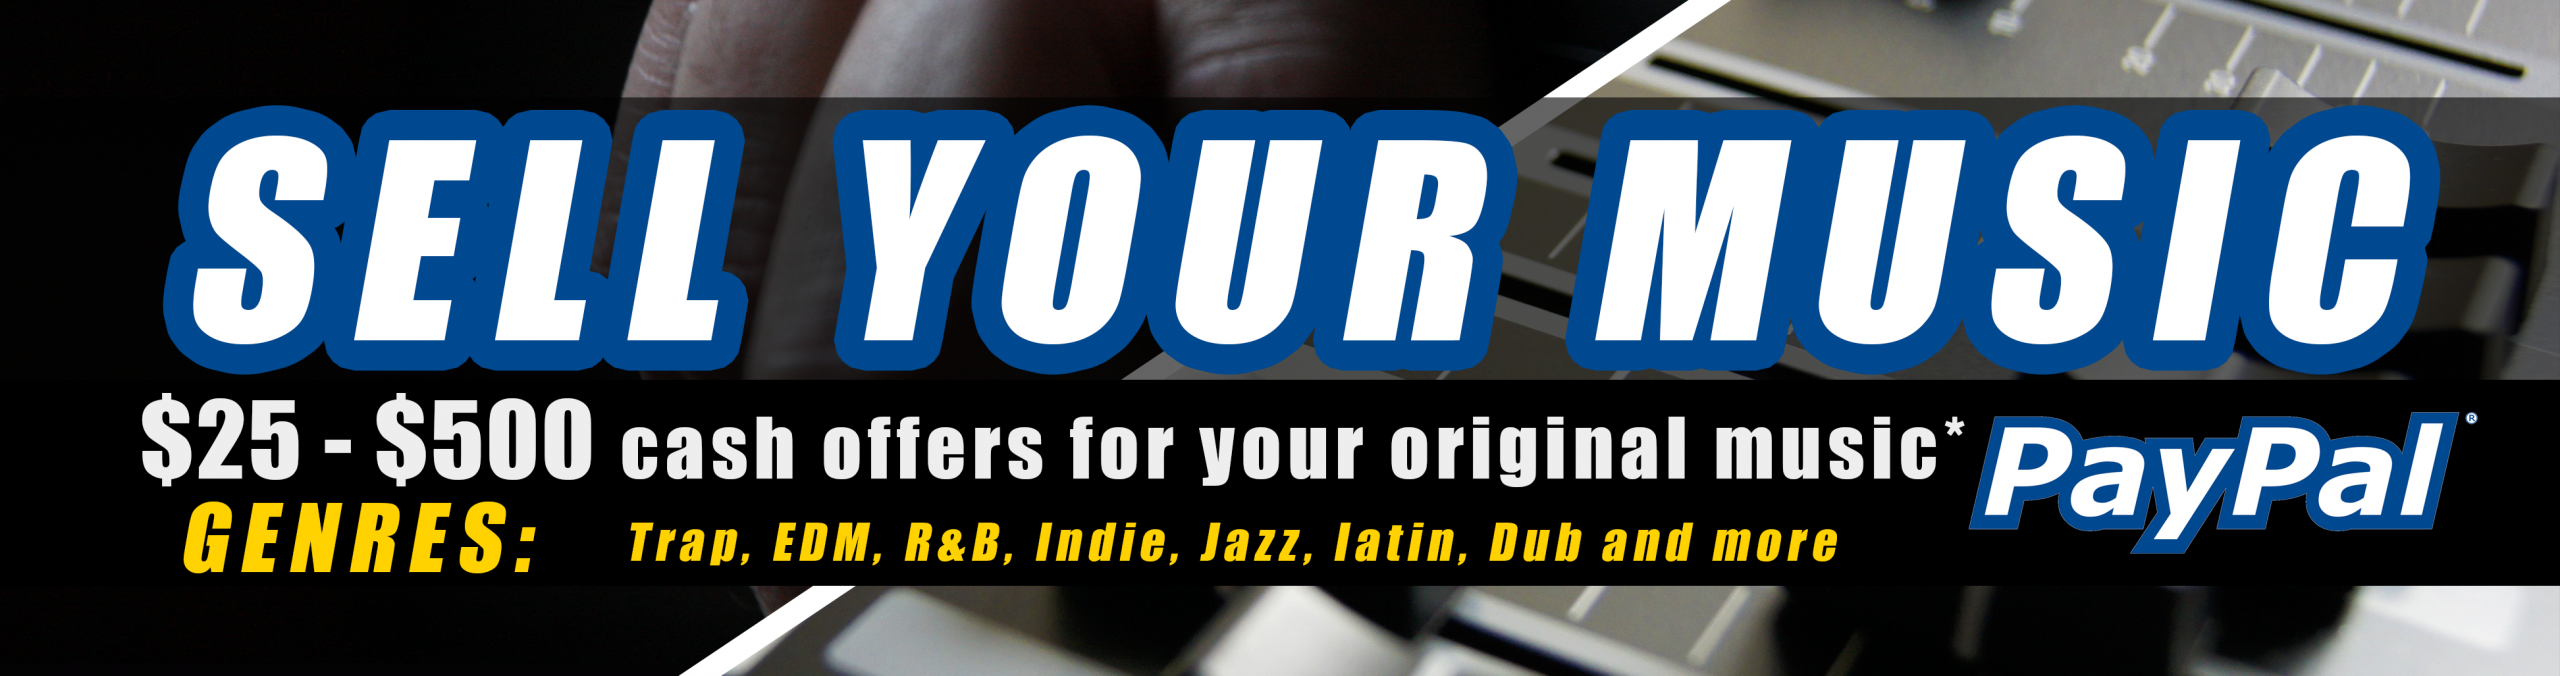 Audio Exchange Banner Ad Sell Your Music